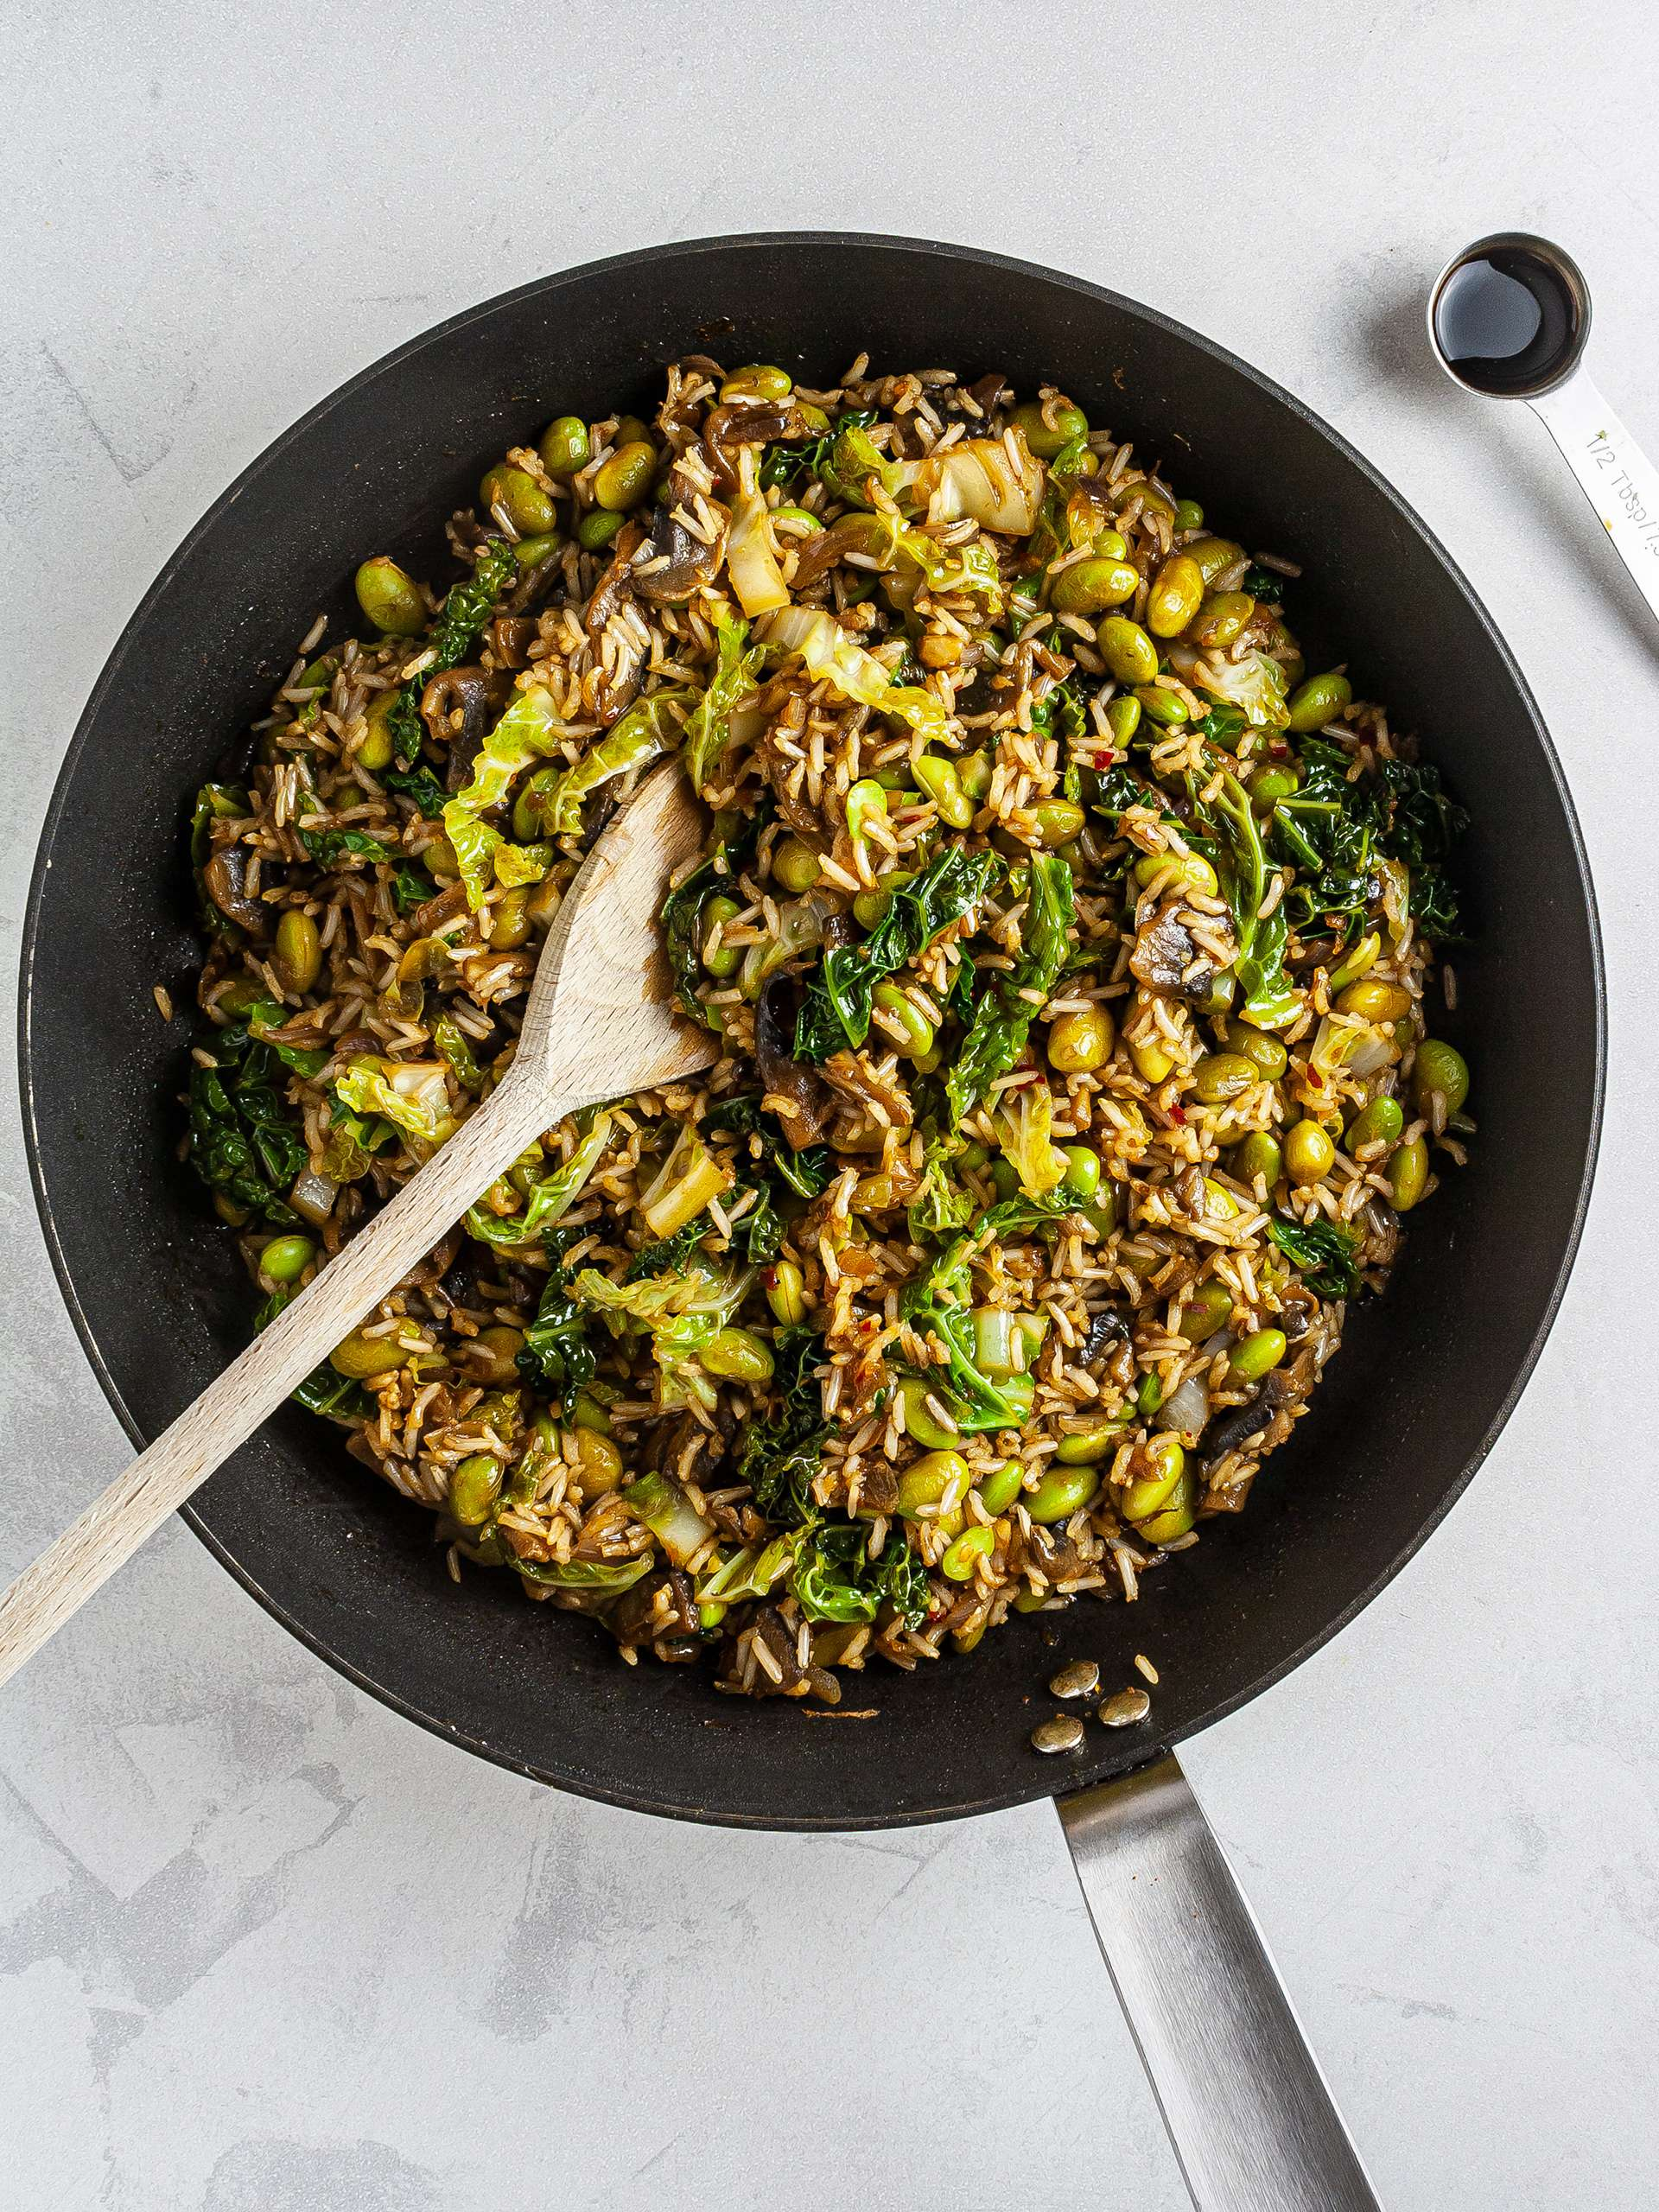 Fried rice with maple and soy sauce